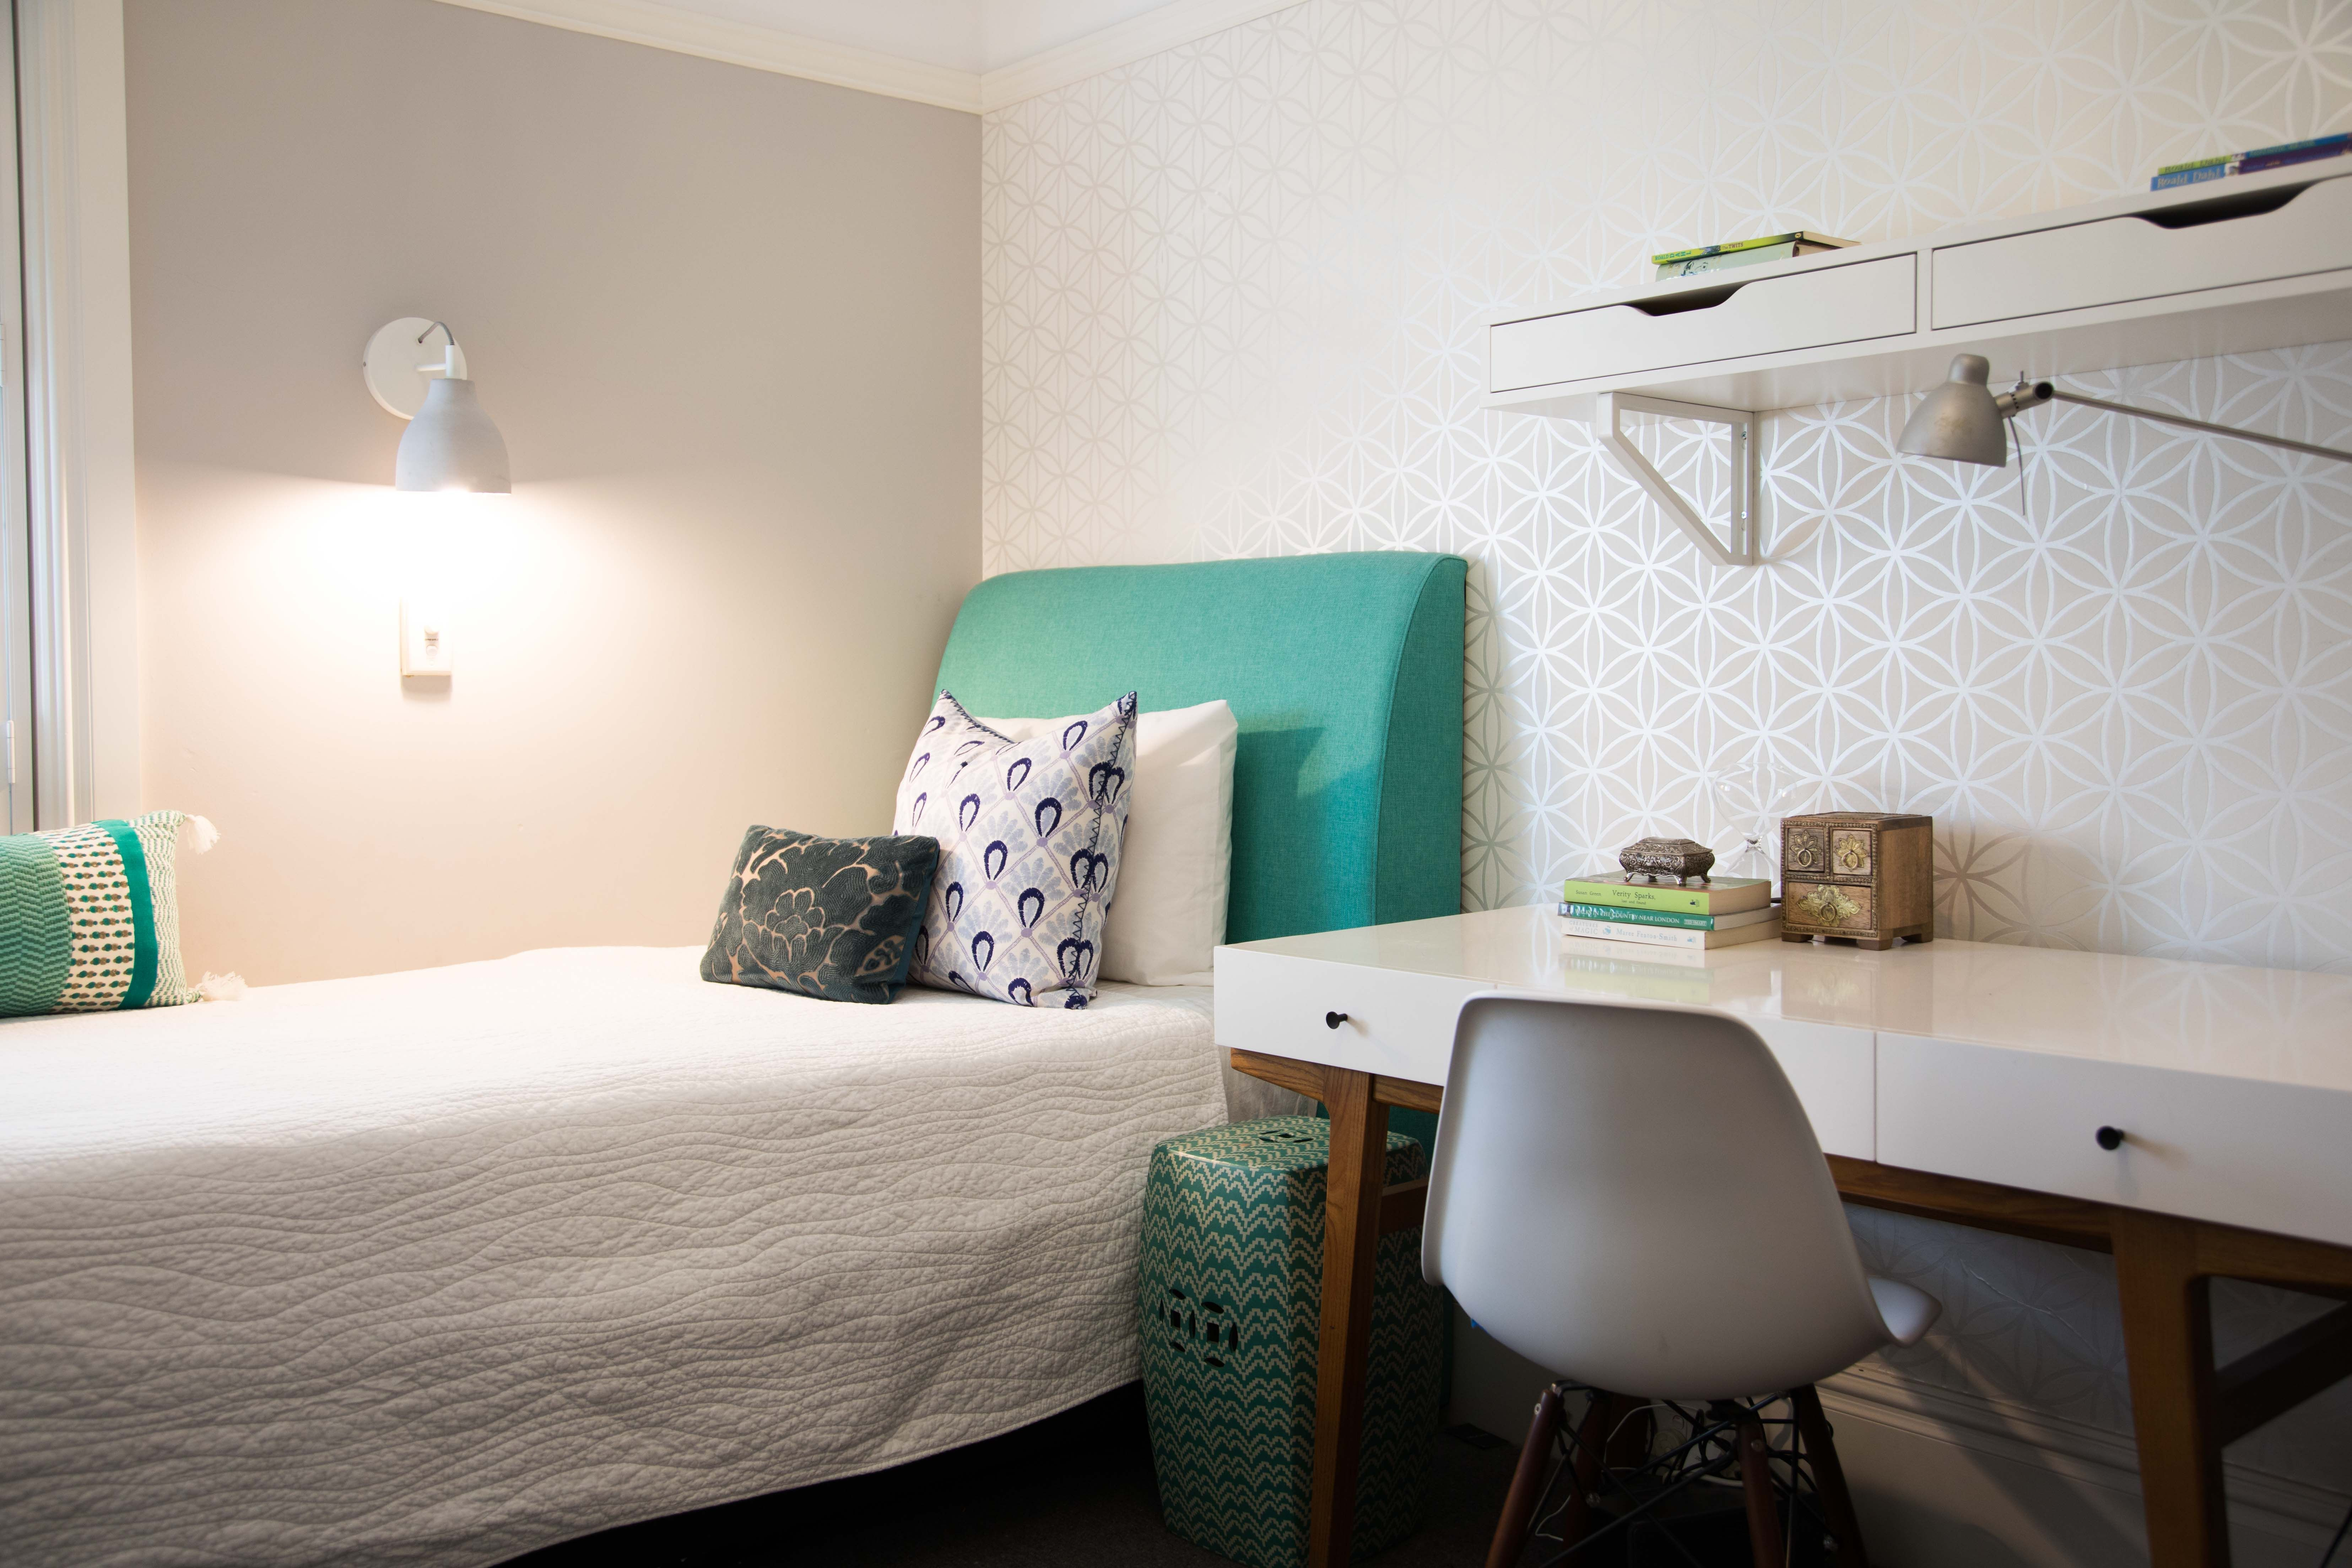 Bedroom Details, With Just A Pop Of Greenblue